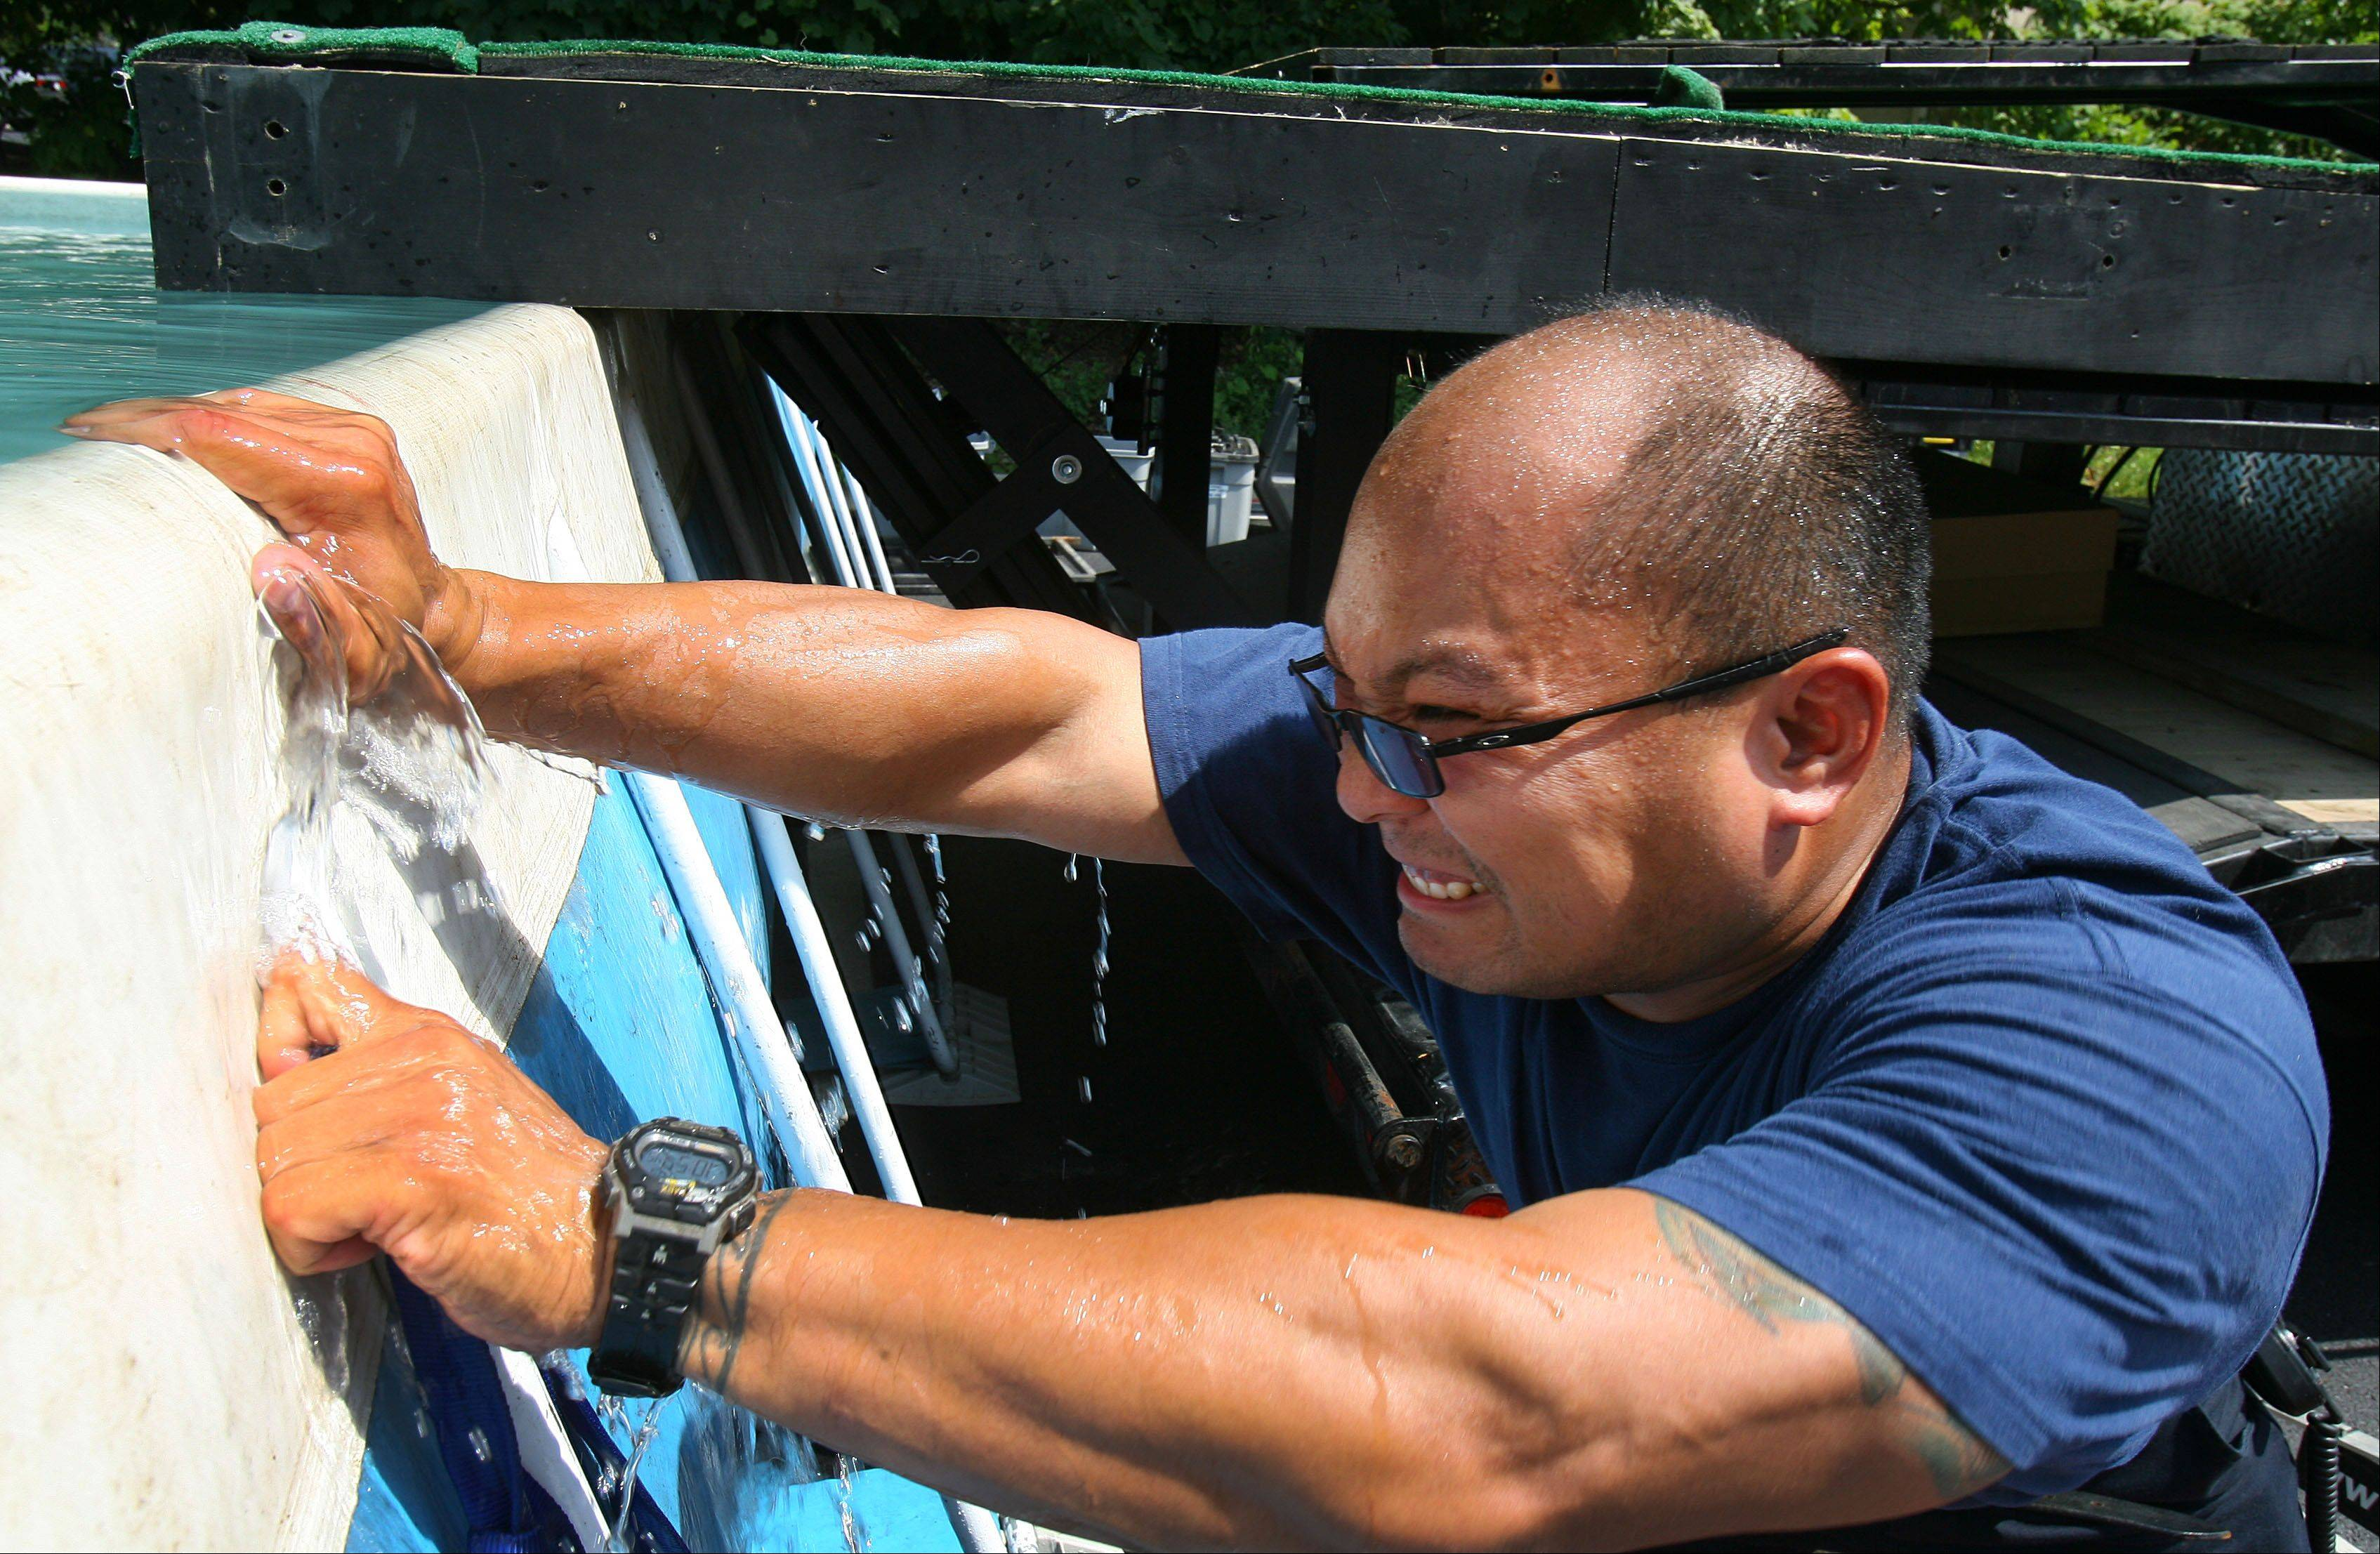 Libertyville firefighter Derek Kwong works on filling a dog jumping pool in preparation for the Dog Days event in downtown Libertyville.